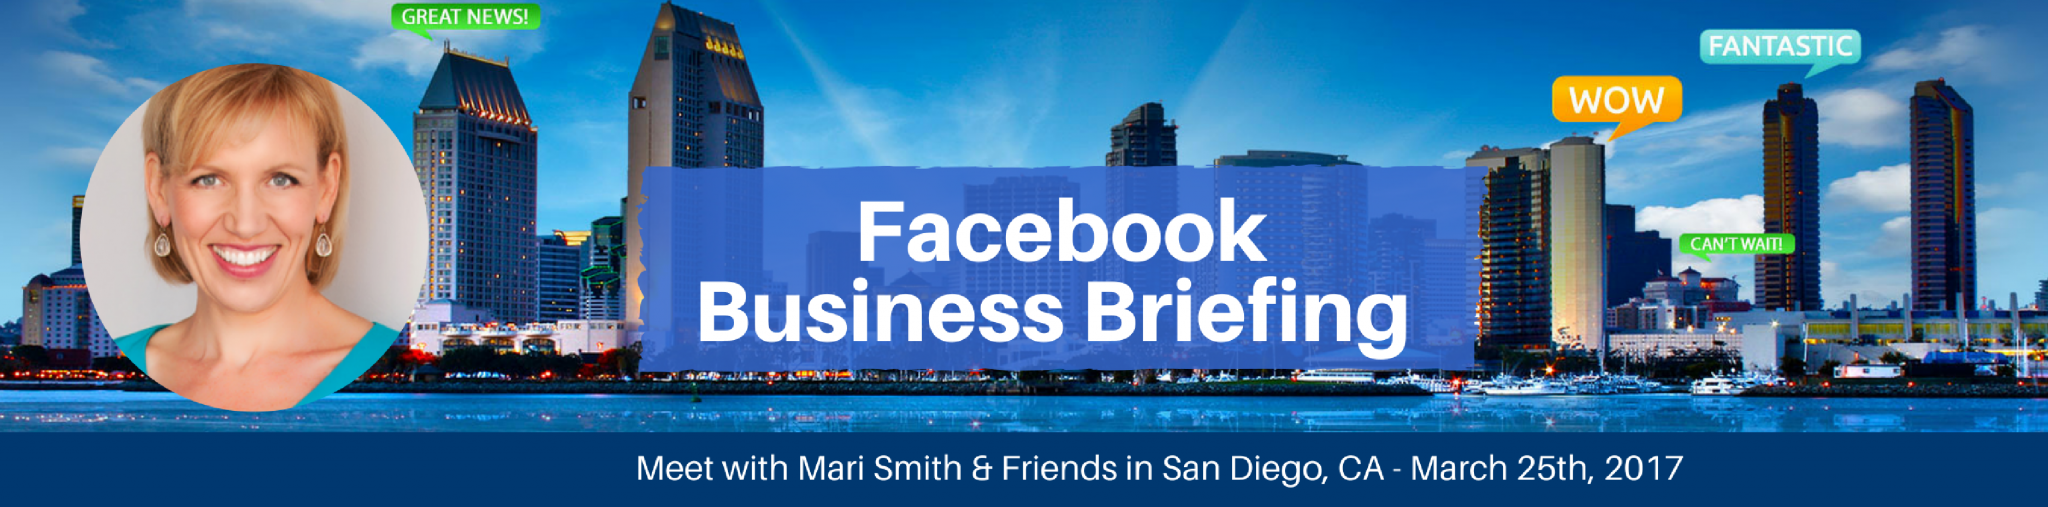 Facebook Business Briefing with Mari Smith